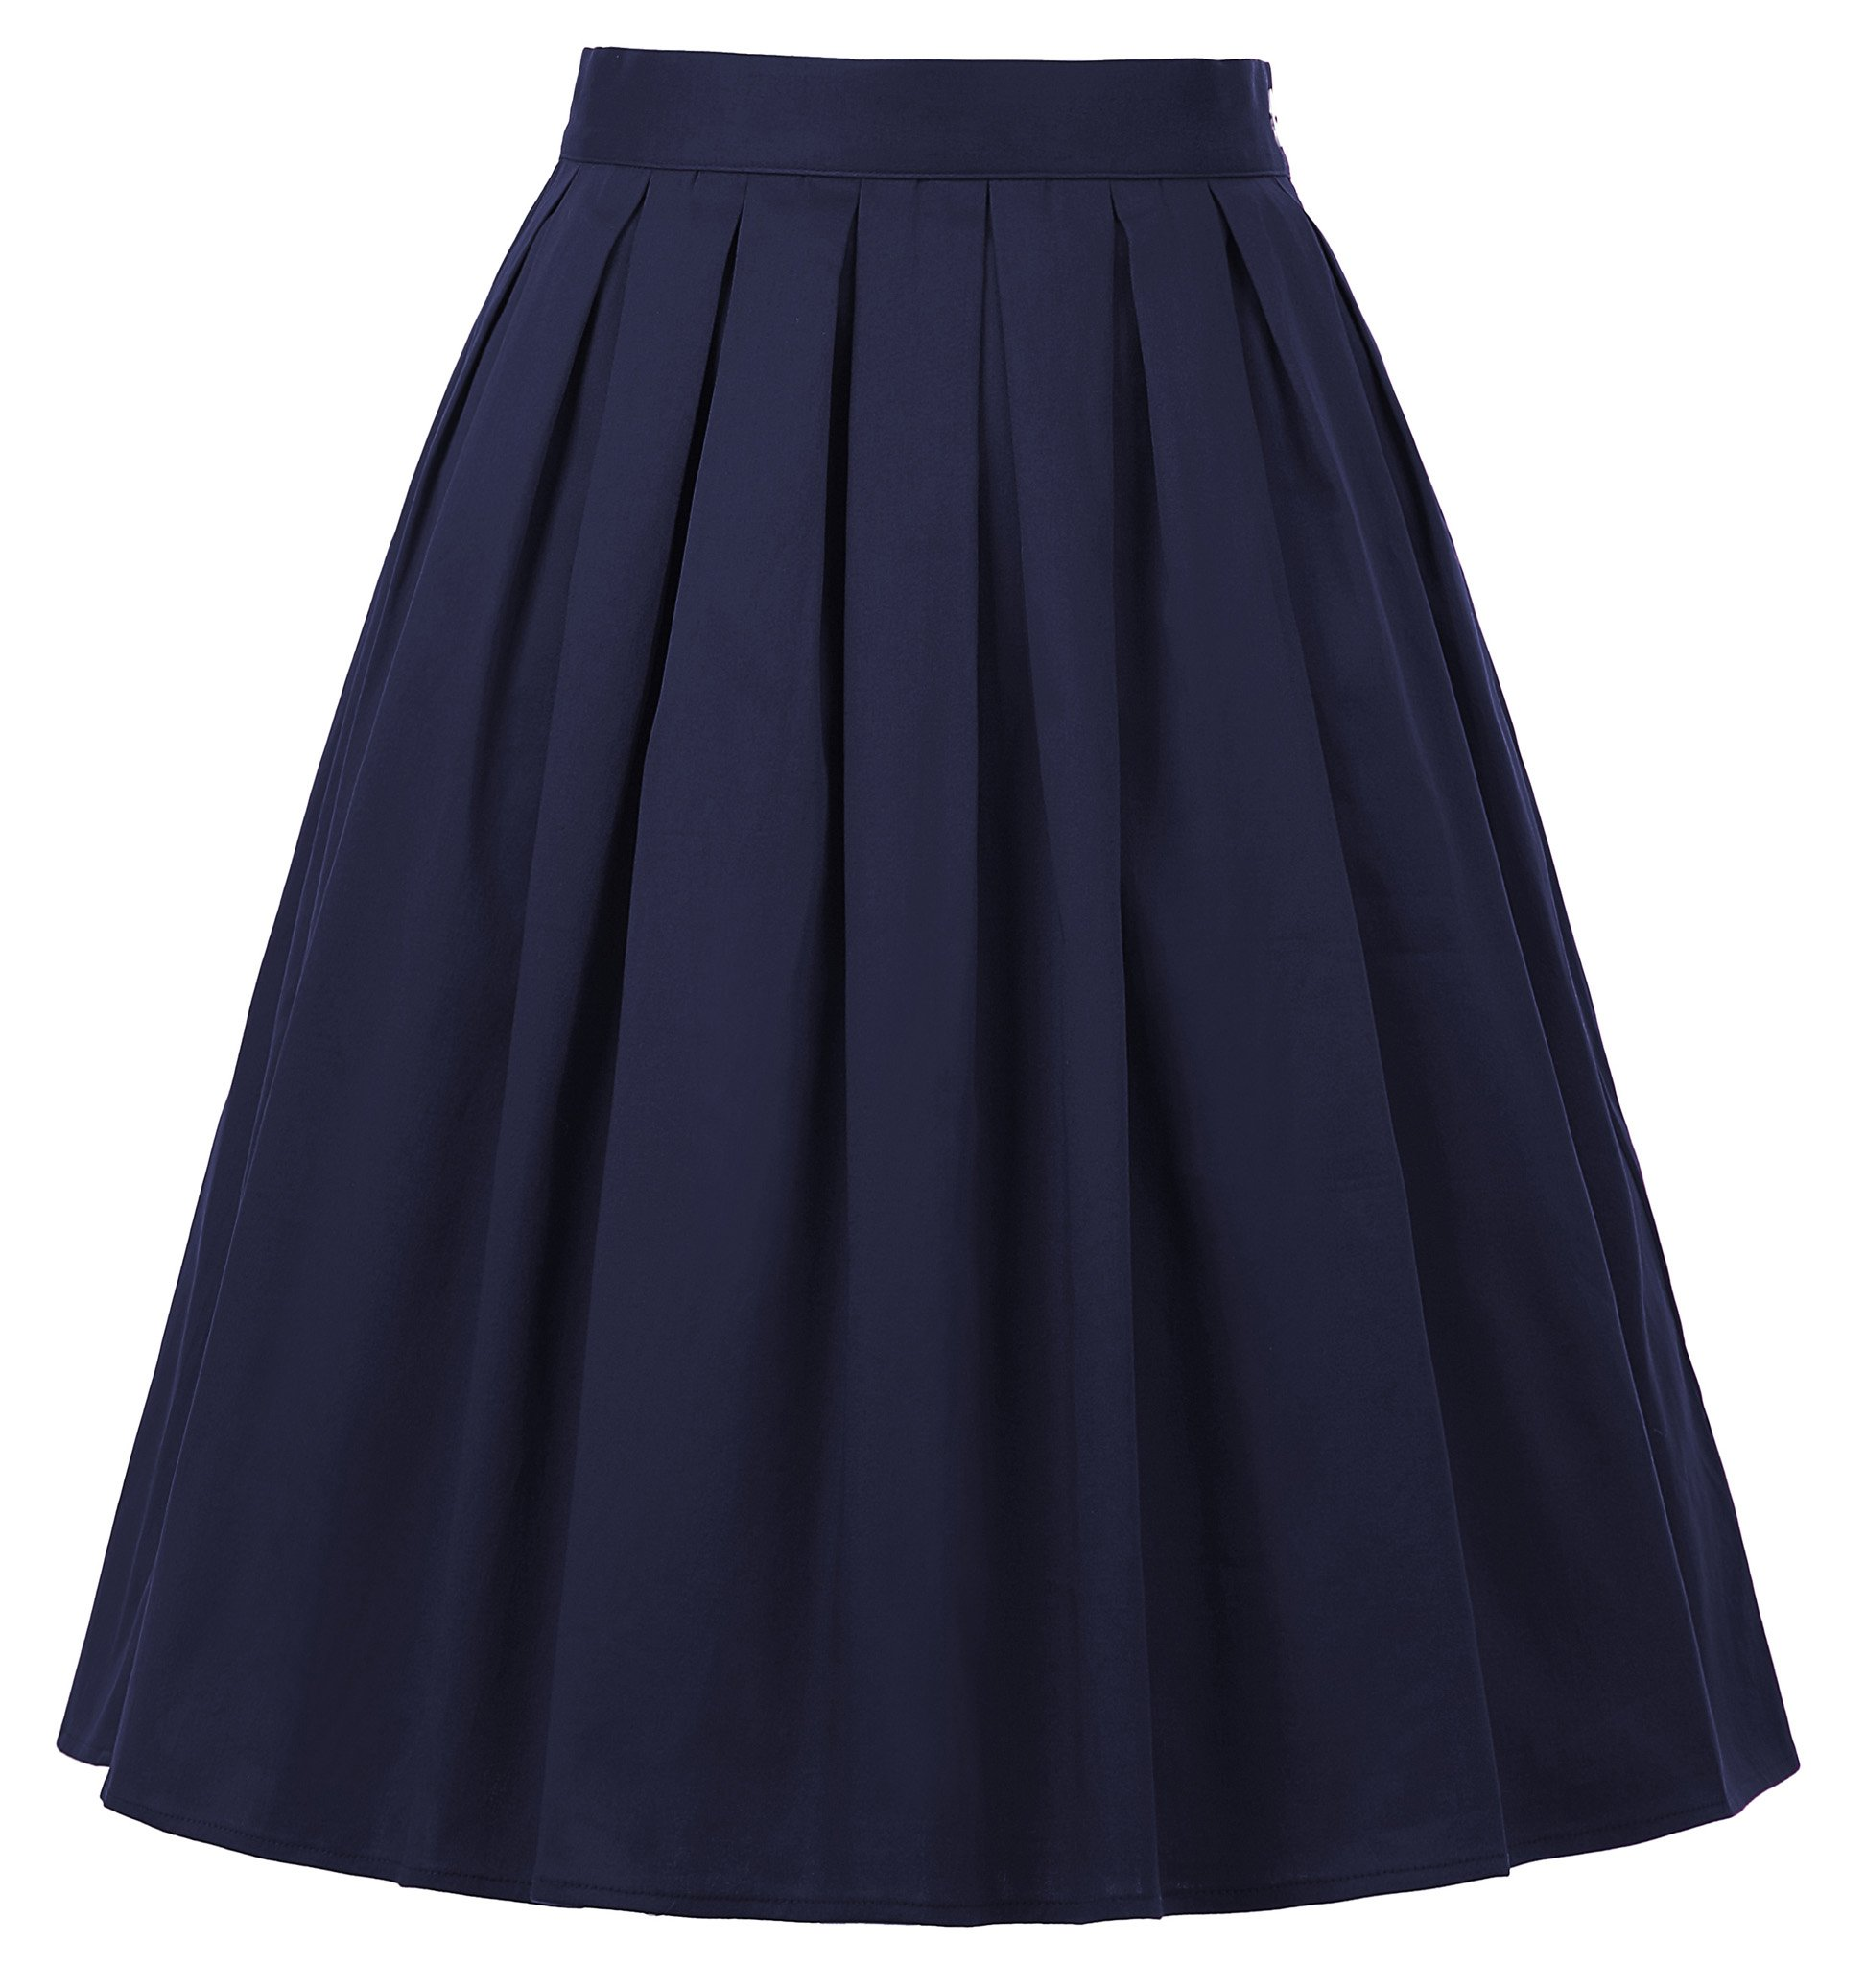 GRACE KARIN Navy Blue 50s Style Casual Flared Bubble Skirts Size M CL6294-21